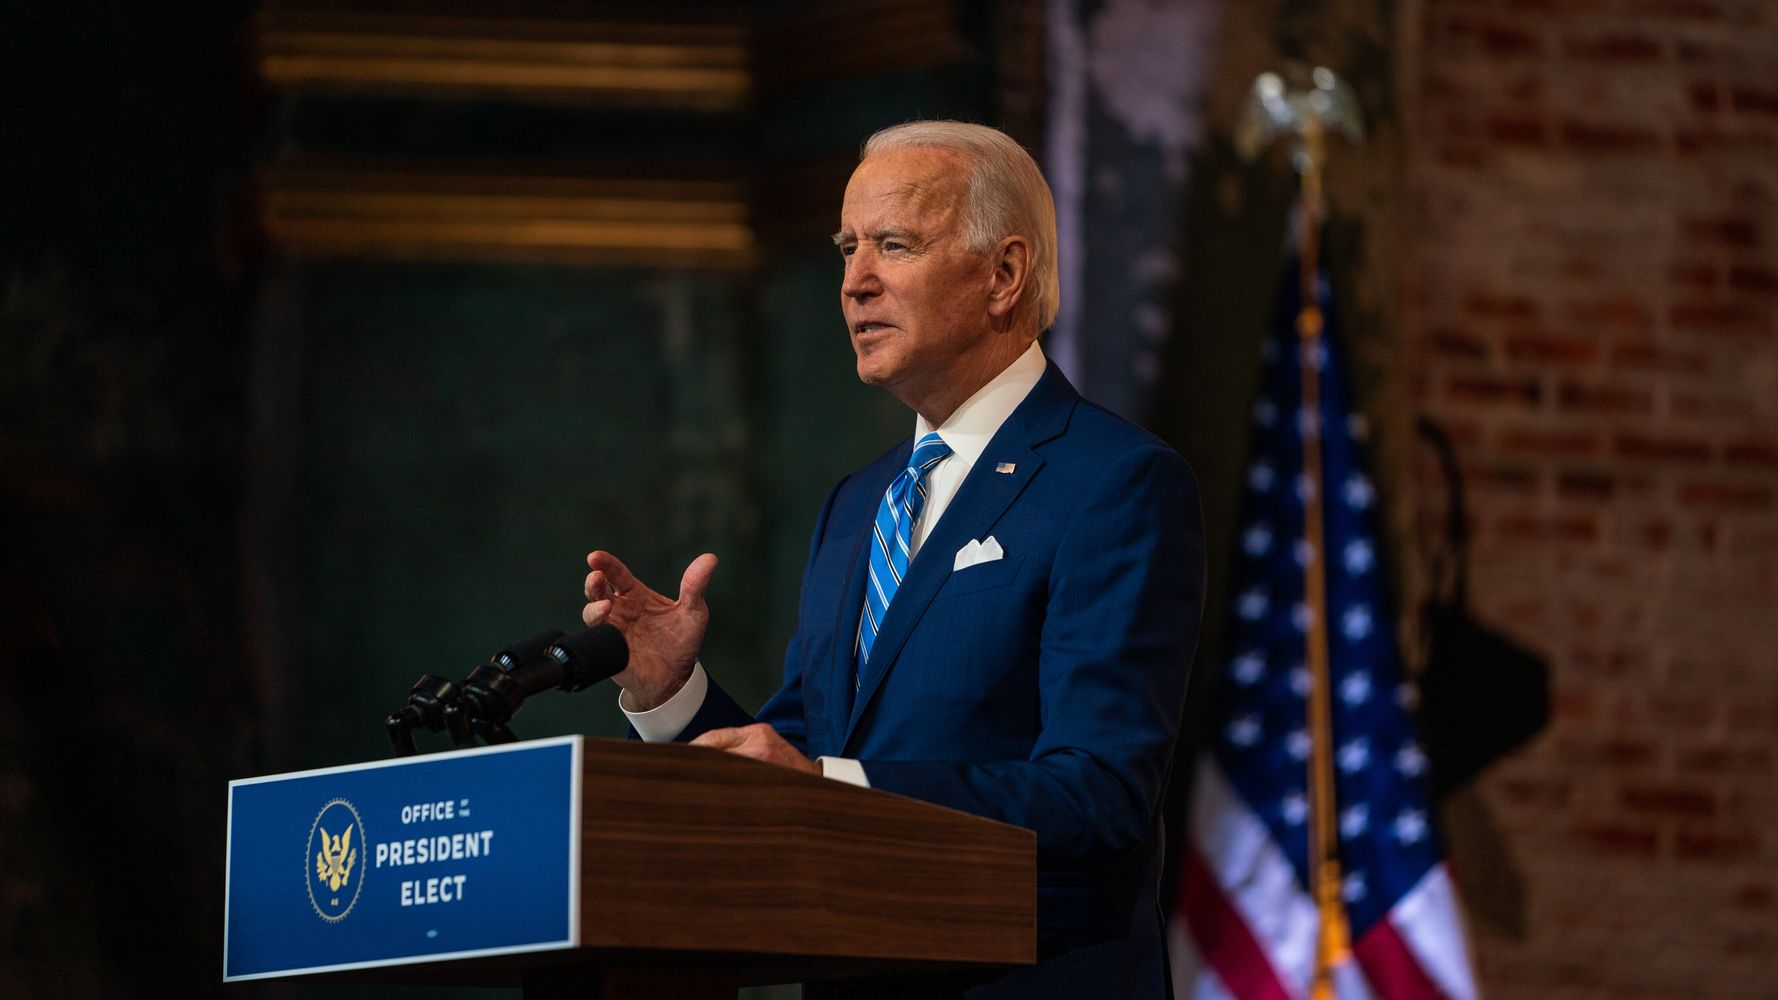 Biden Expected To Name Senior Members Of Economic Team